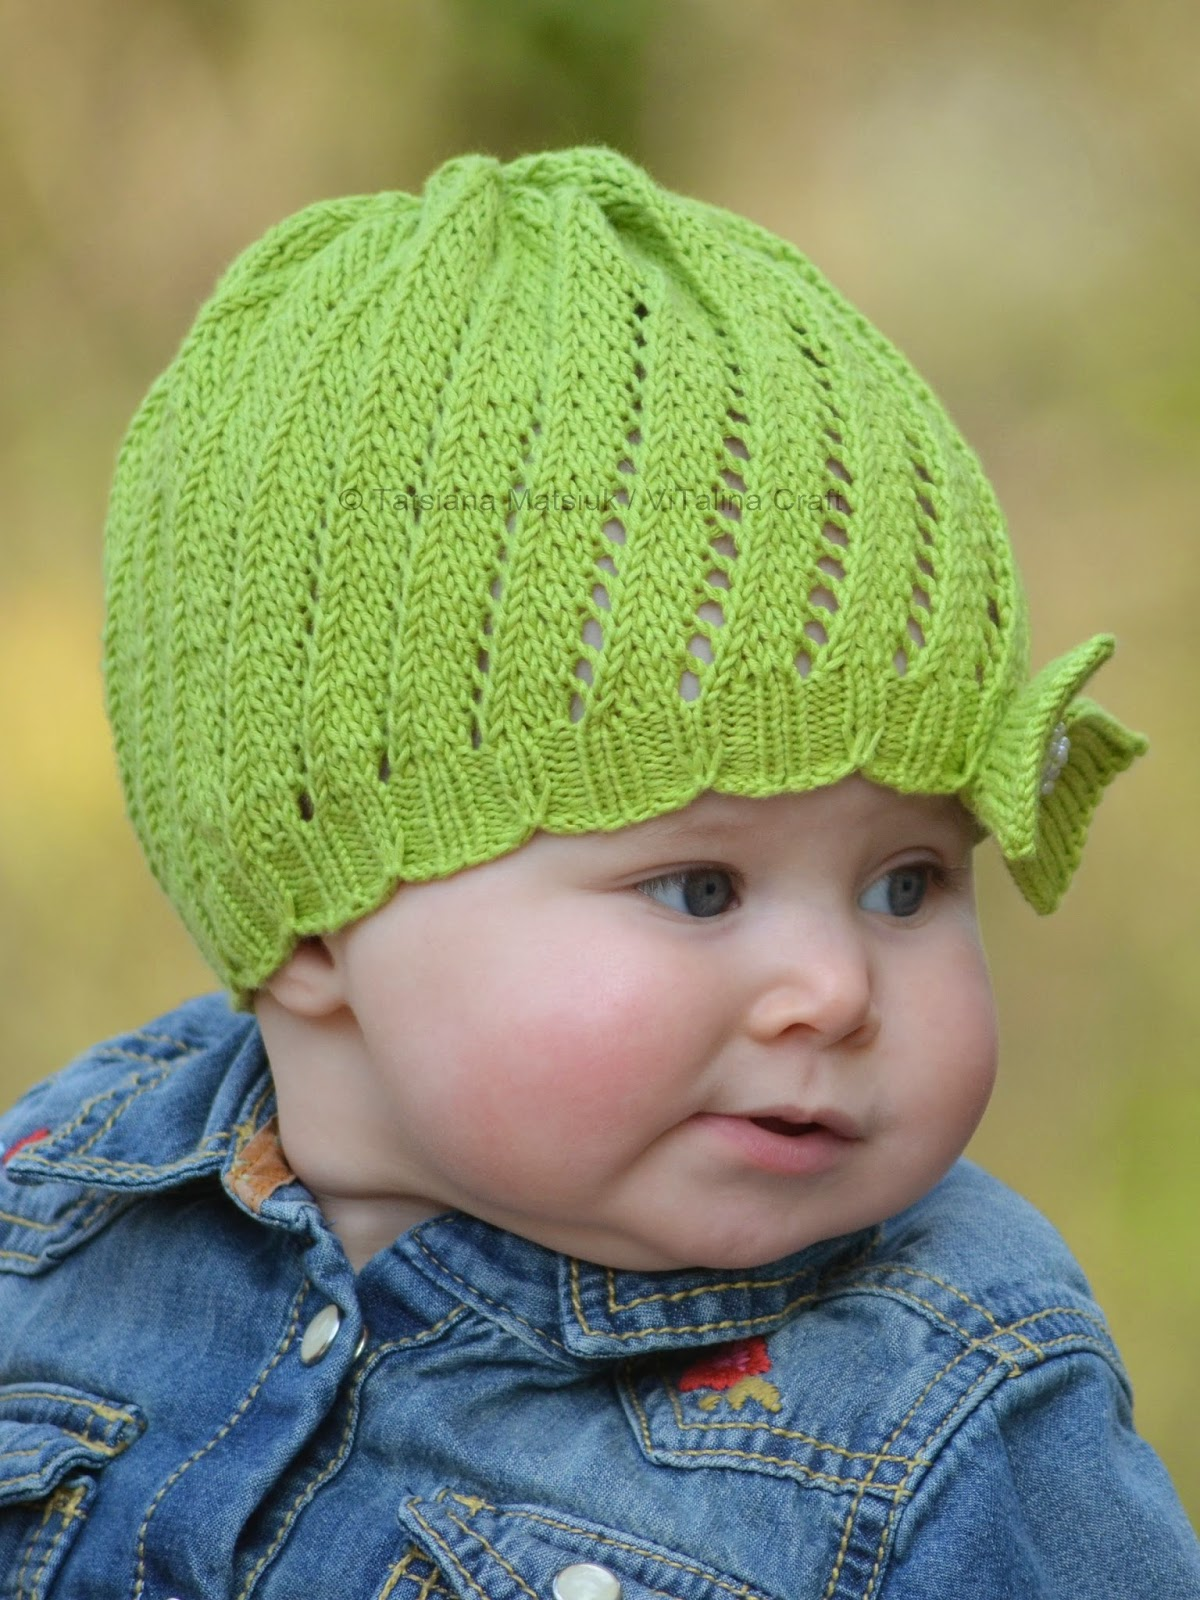 Knitting Pattern Using Cotton Yarn : Spinning Waves Hat Knitting Pattern ViTalina Craft